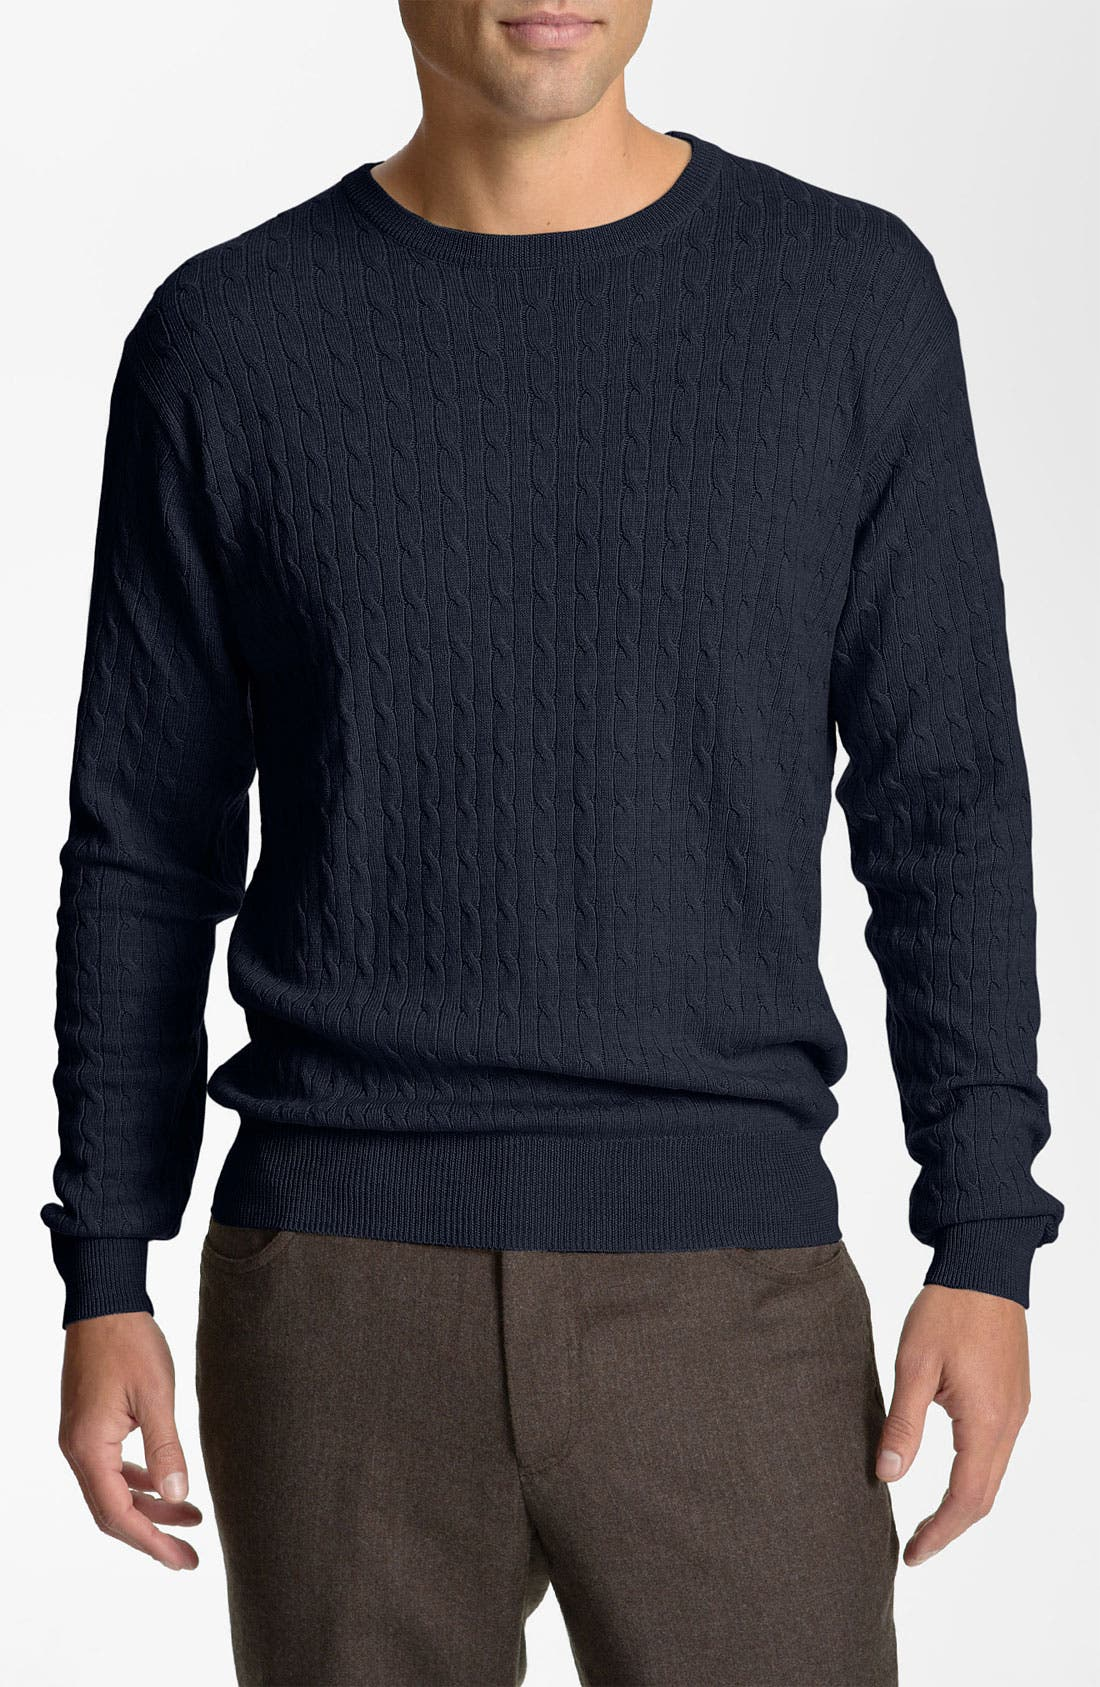 Main Image - Peter Millar Cable Knit Merino Wool Sweater (Nordstrom Exclusive)